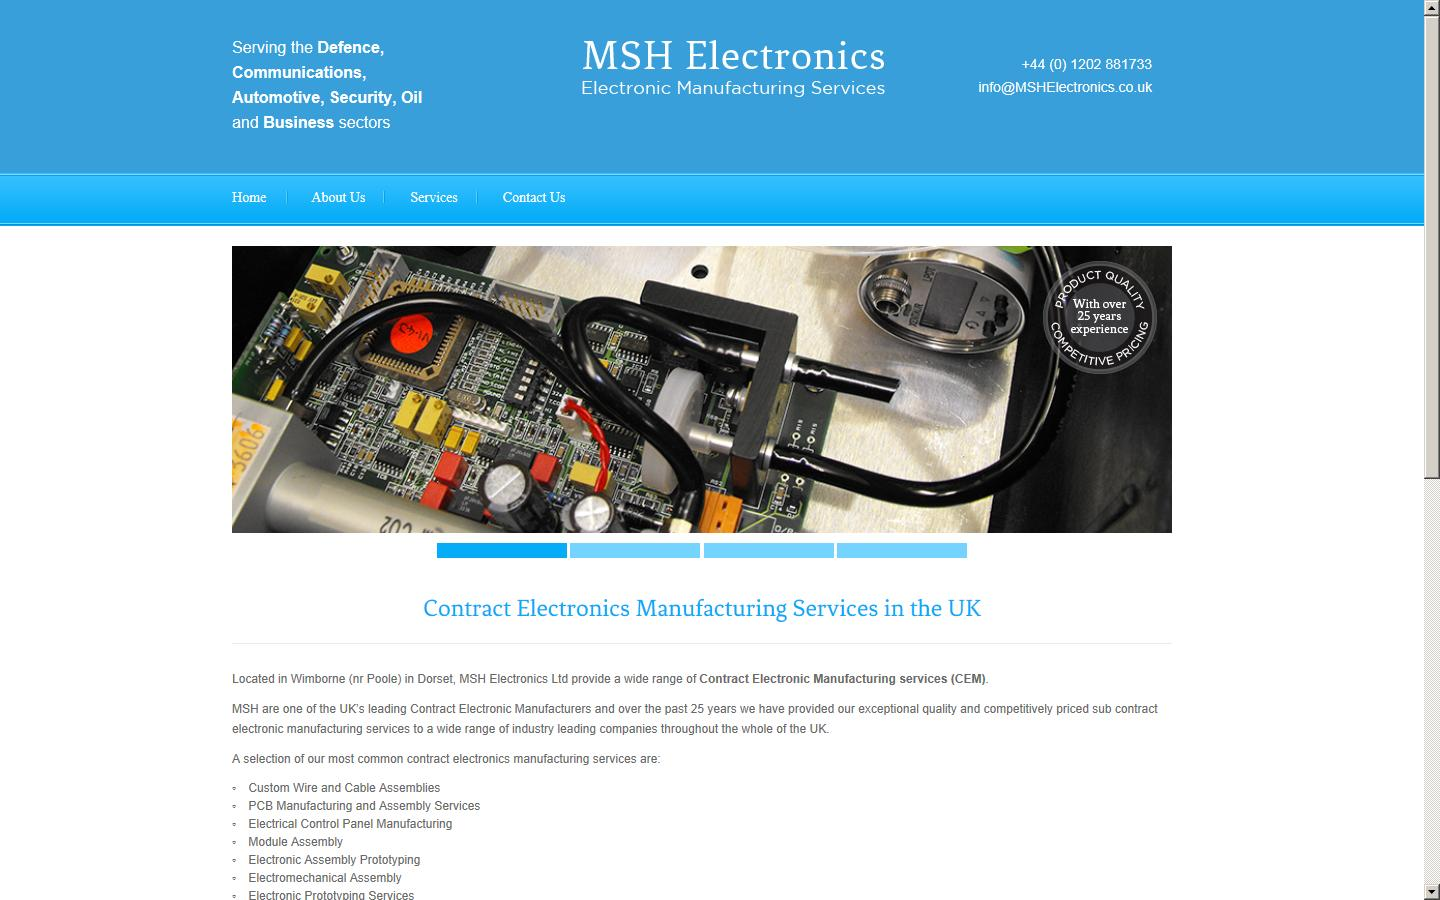 Msh Electronics Ltd Dorset Bh21 1hb Electronic Circuit Boardbga Pcb Assemblyelectronic Board Assemblies Control Panels Module Assembly Prototyping And Electromechanical Services To The Industry For